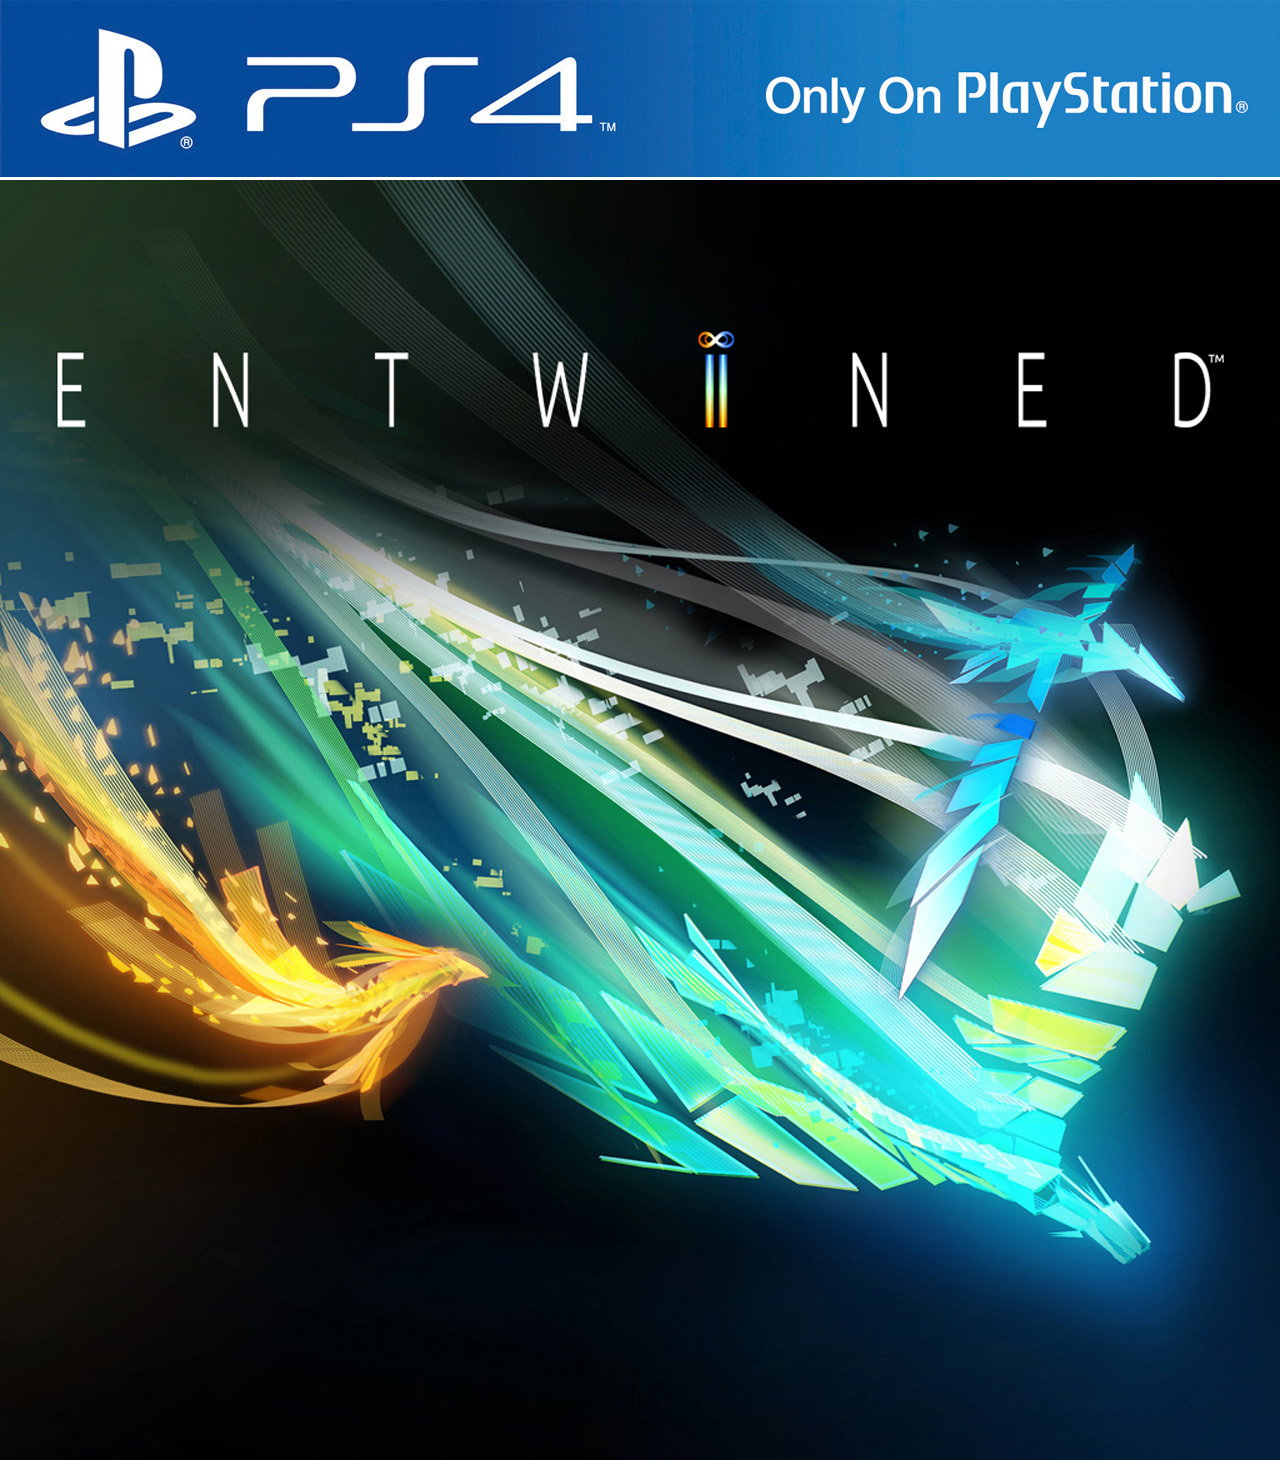 Entwined [PS4 Exclusive] 5.05 / 6.72 / 7.02 [EUR] (2014) [Русский] (v1.02)